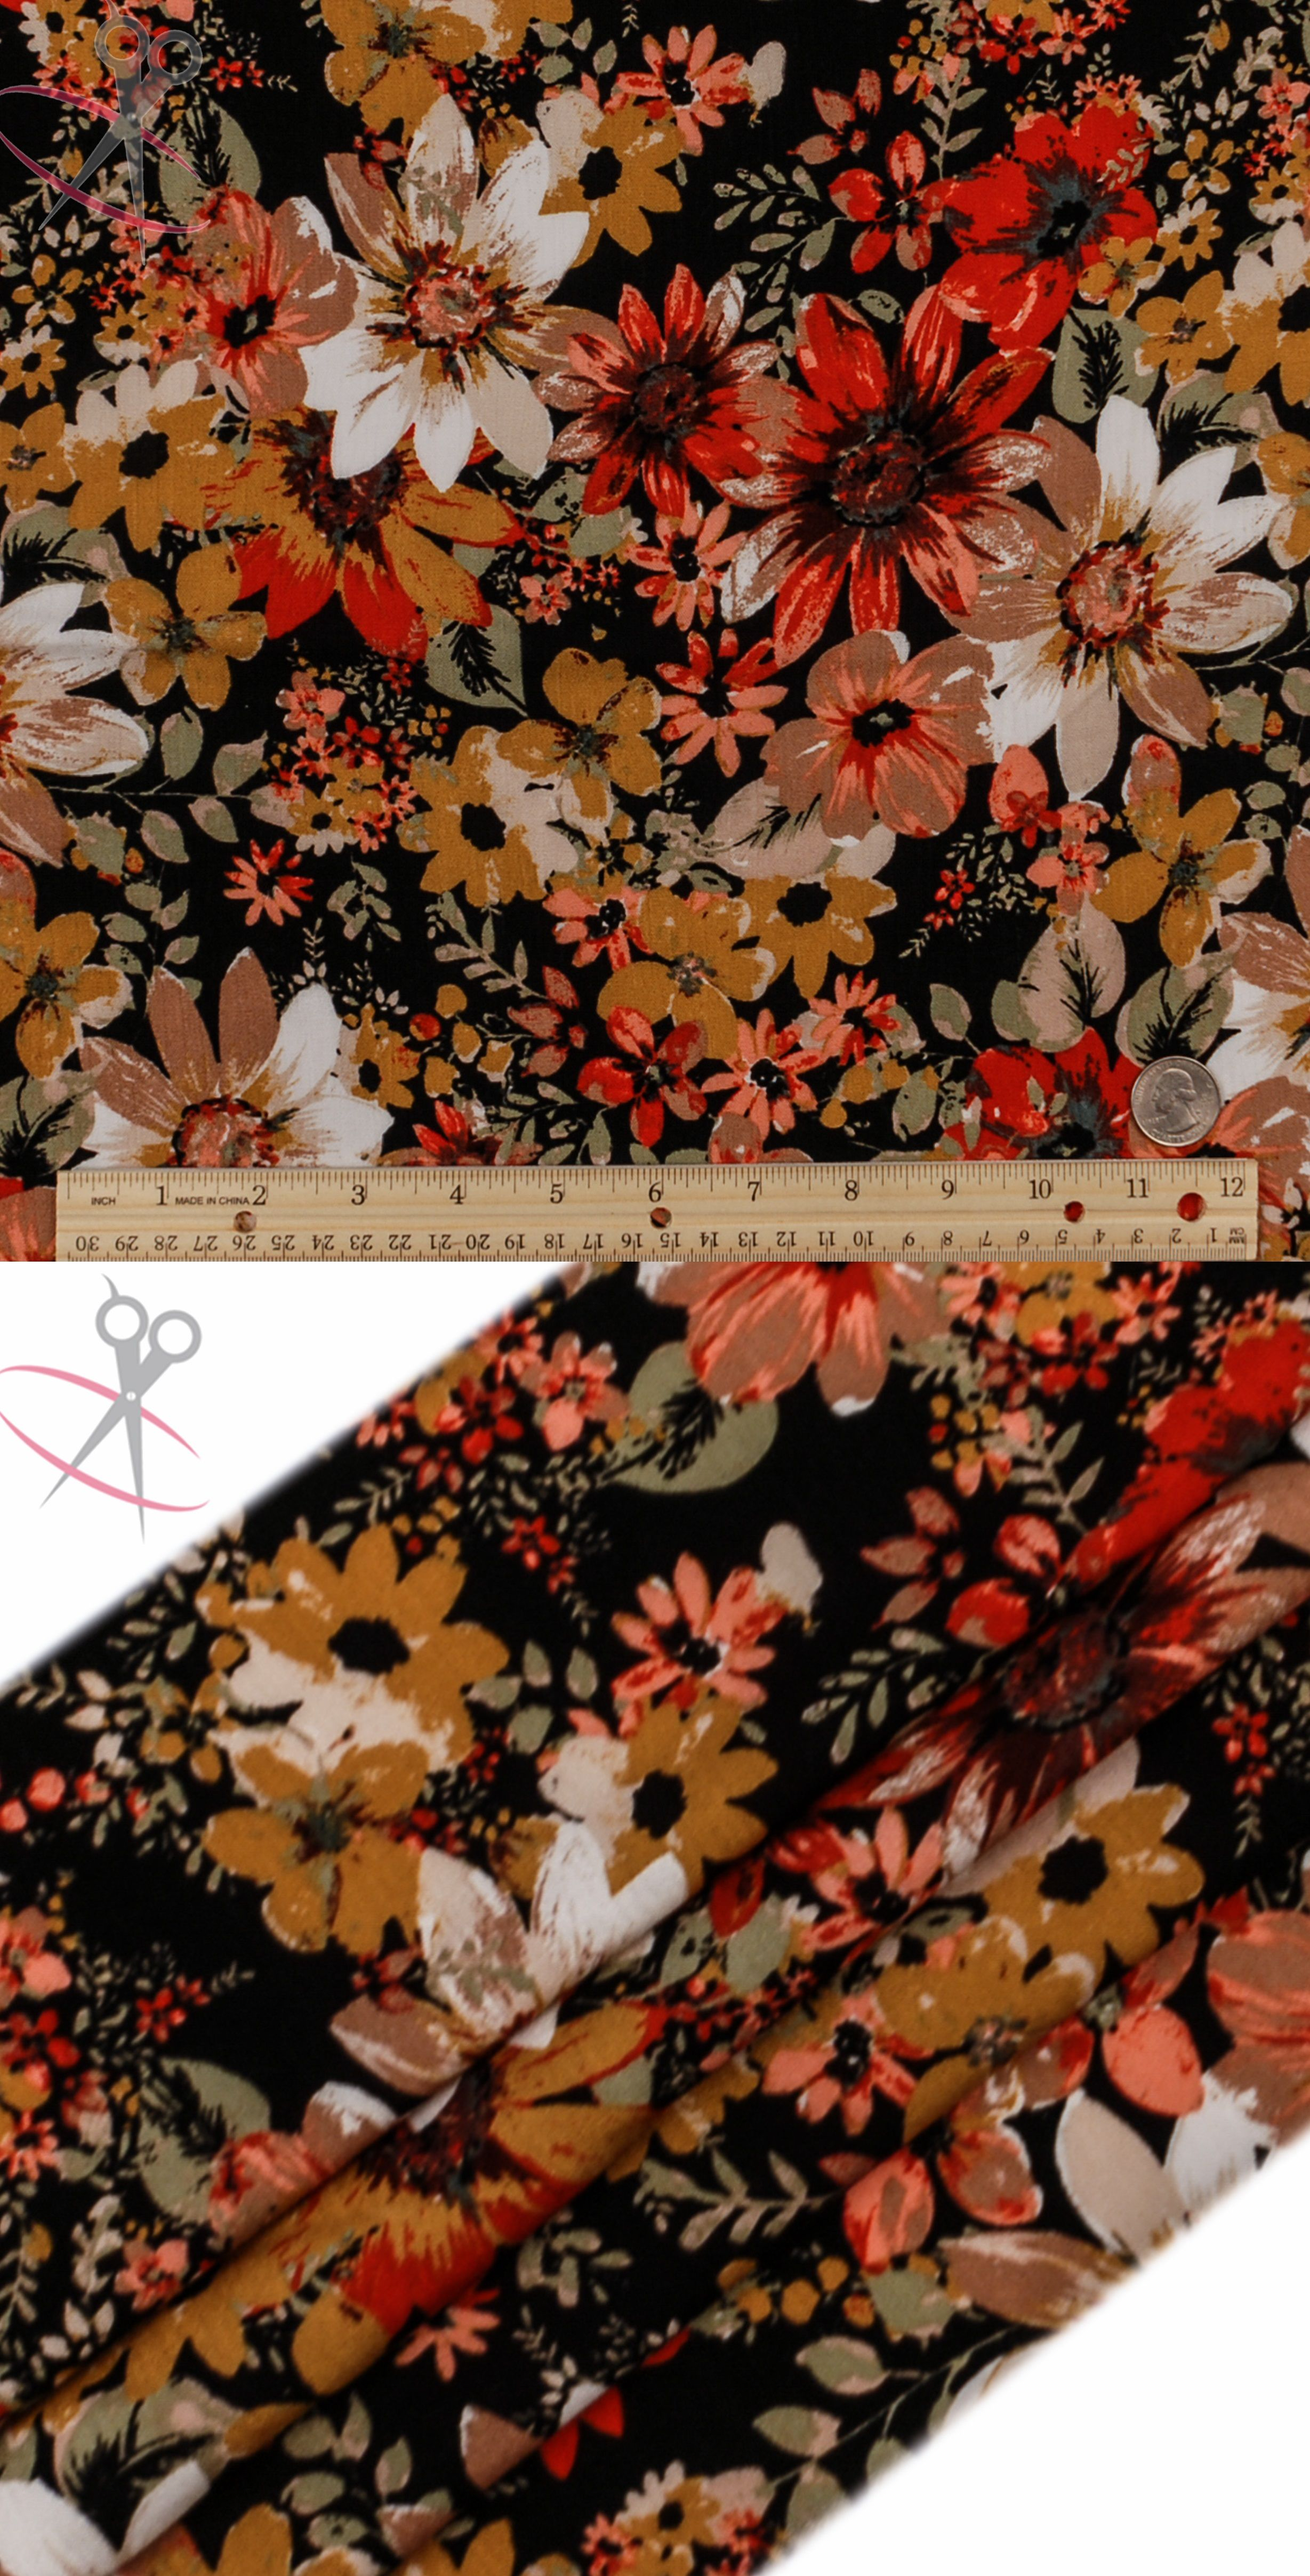 A design inspired by the Fall Season's beauty, we present the Autumn Flower Floral Print. Large Daisies spread across the face of this print, with smaller, rounded daisies falling back behind & under. Off White, Mustard, Coral, Water Cress, Tomato Red & Beige colors are all used atop the all black background. Rayon Crinkle can be the main component in any item of clothing, from dresses and skirts, to scarves and headbands, Rayon Crinkle will provide a perfect look to show off to your…